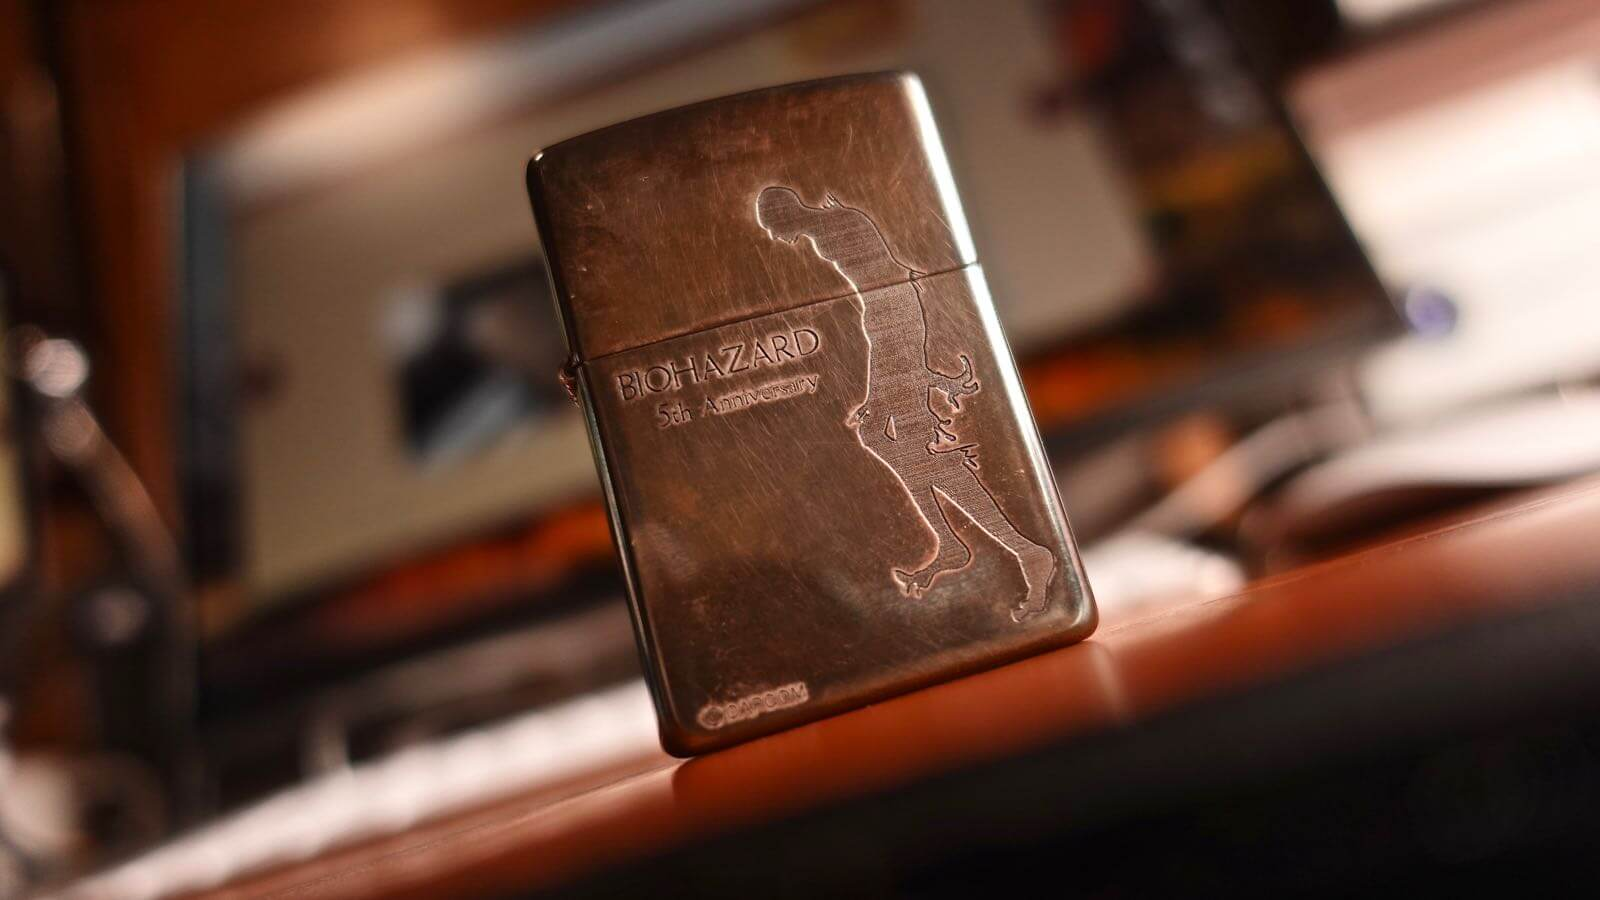 0012 Baiohazad 5th anniversary zippo collaboration 01